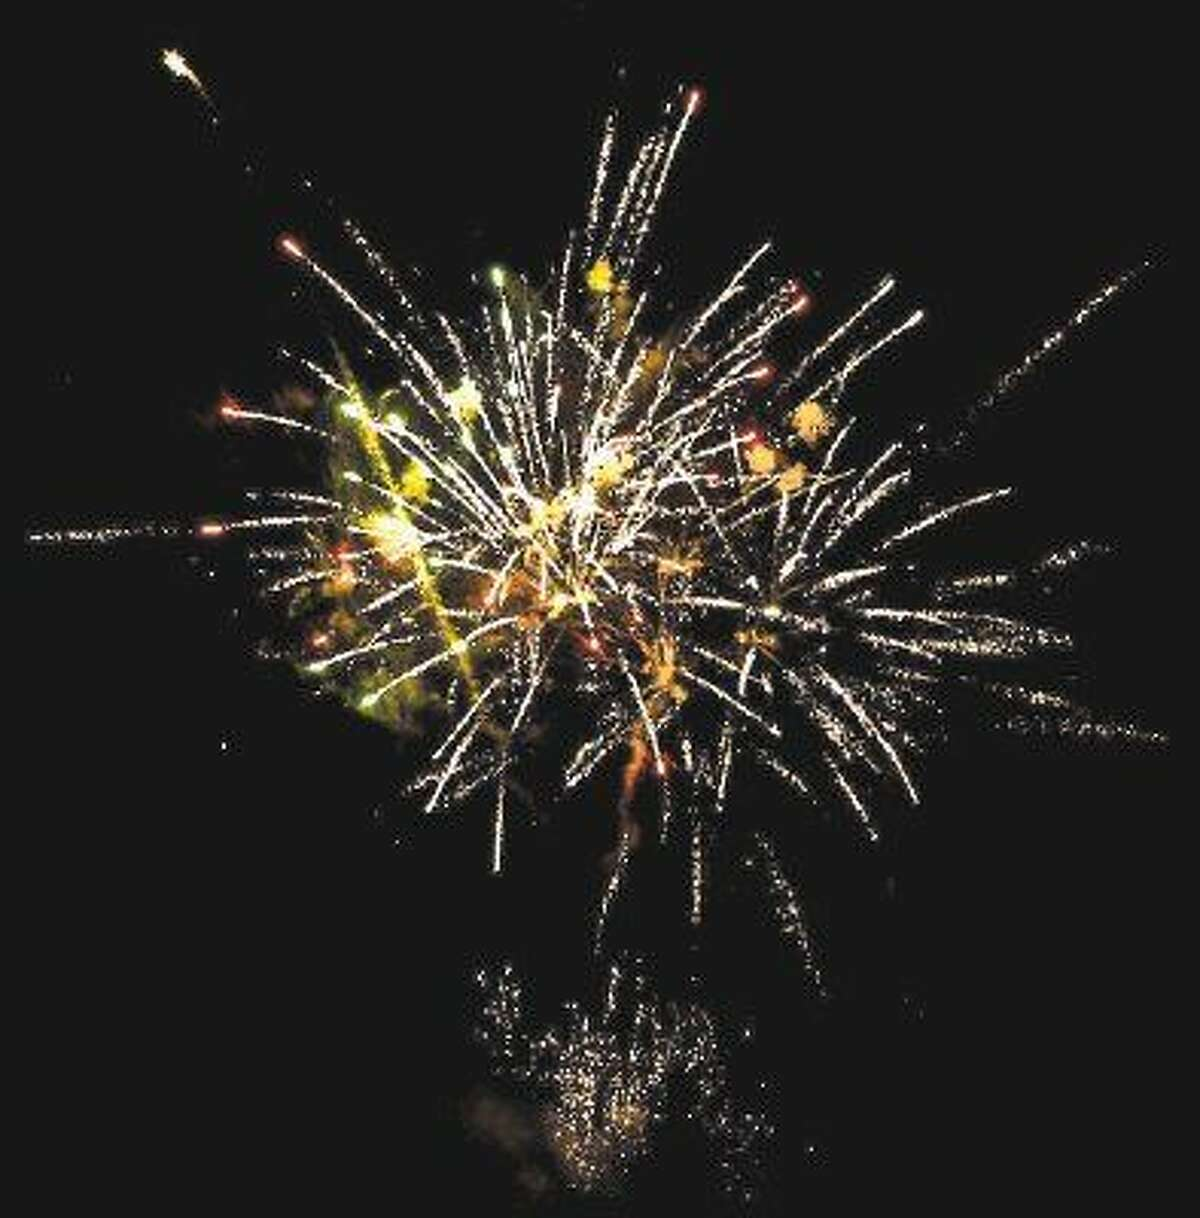 Restaurants in Kingwood, Humble and Atascocita offer a variety of options for New Year's Eve.